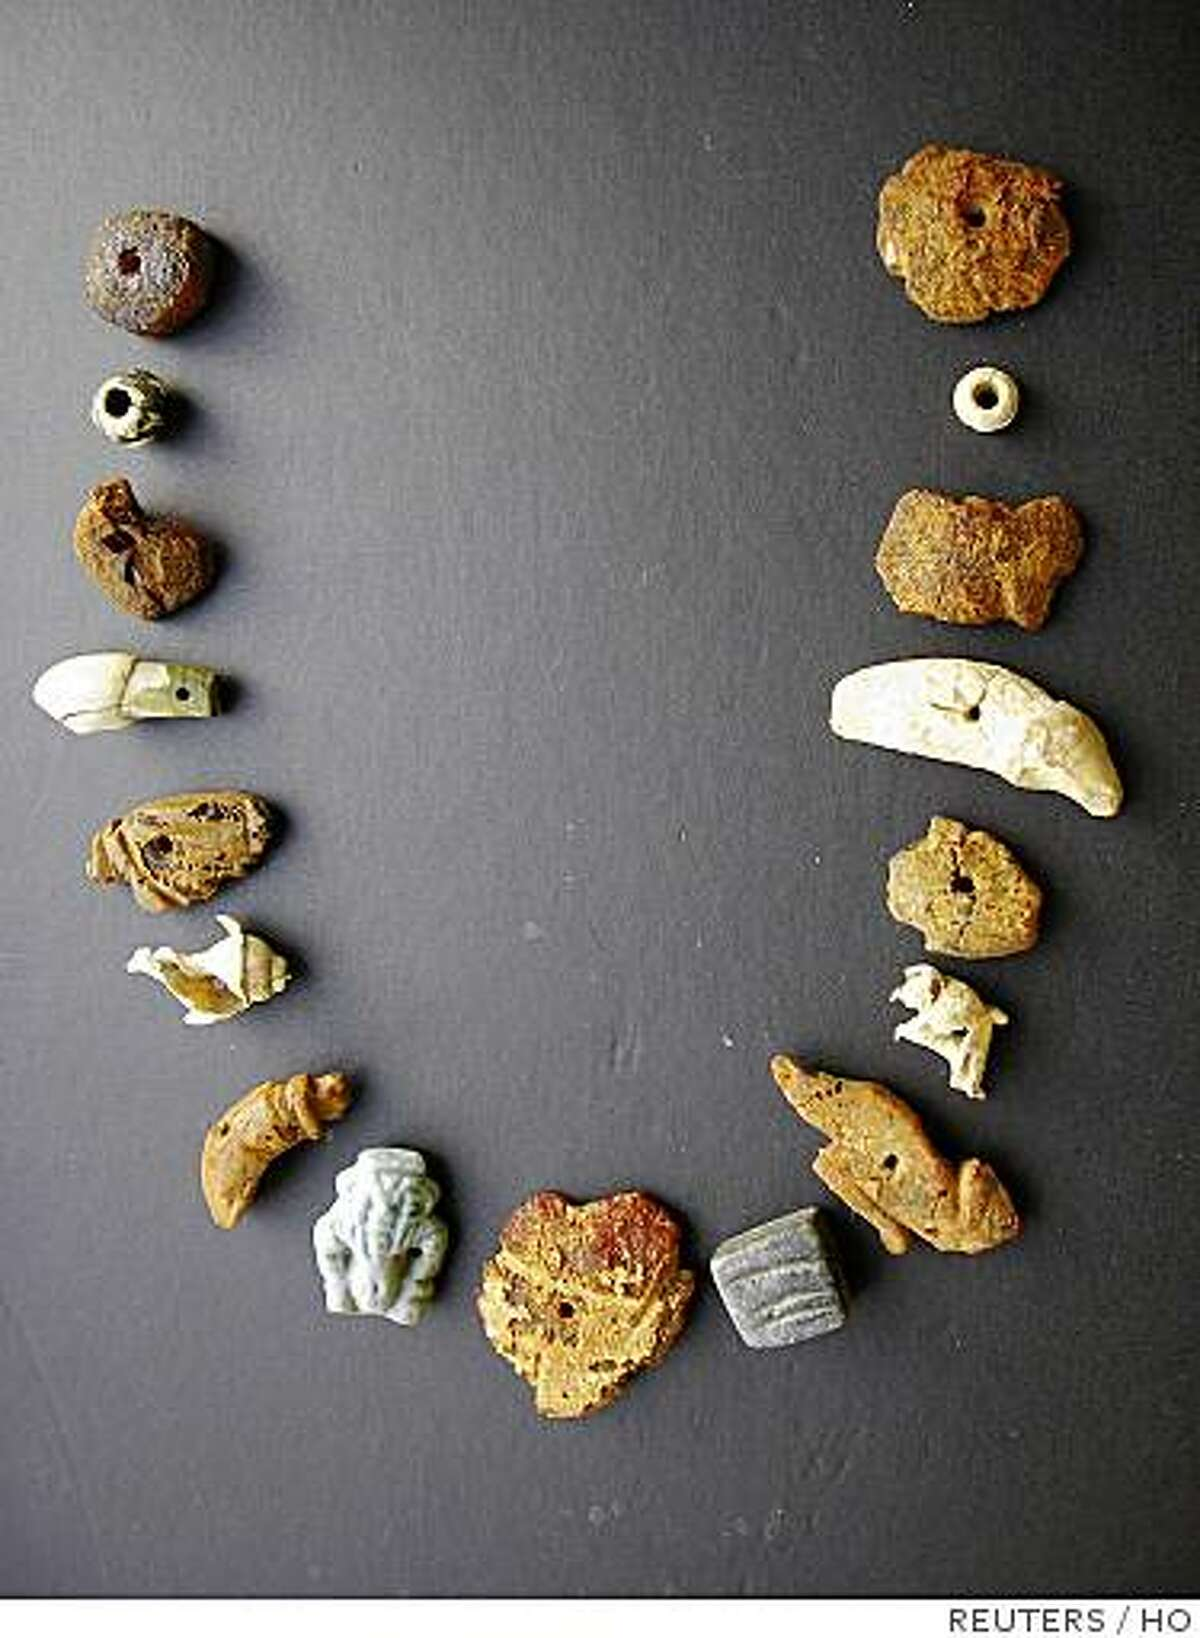 Part of a necklace, discovered in a necropolis on the outskirts of Rome, is shown in a photo released July 17, 2007. Archaeologist have discovered a nearly 2000-year-old intact necropolis on the outskirts of Rome that gives a rare insight into the lives of poor labourers in the Roman era, they said on June 9, 2008. REUTERS/Archaeology Superintendent of Rome/Handout (ITALY). FOR EDITORIAL USE ONLY. NOT FOR SALE FOR MARKETING OR ADVERTISING CAMPAIGNS.